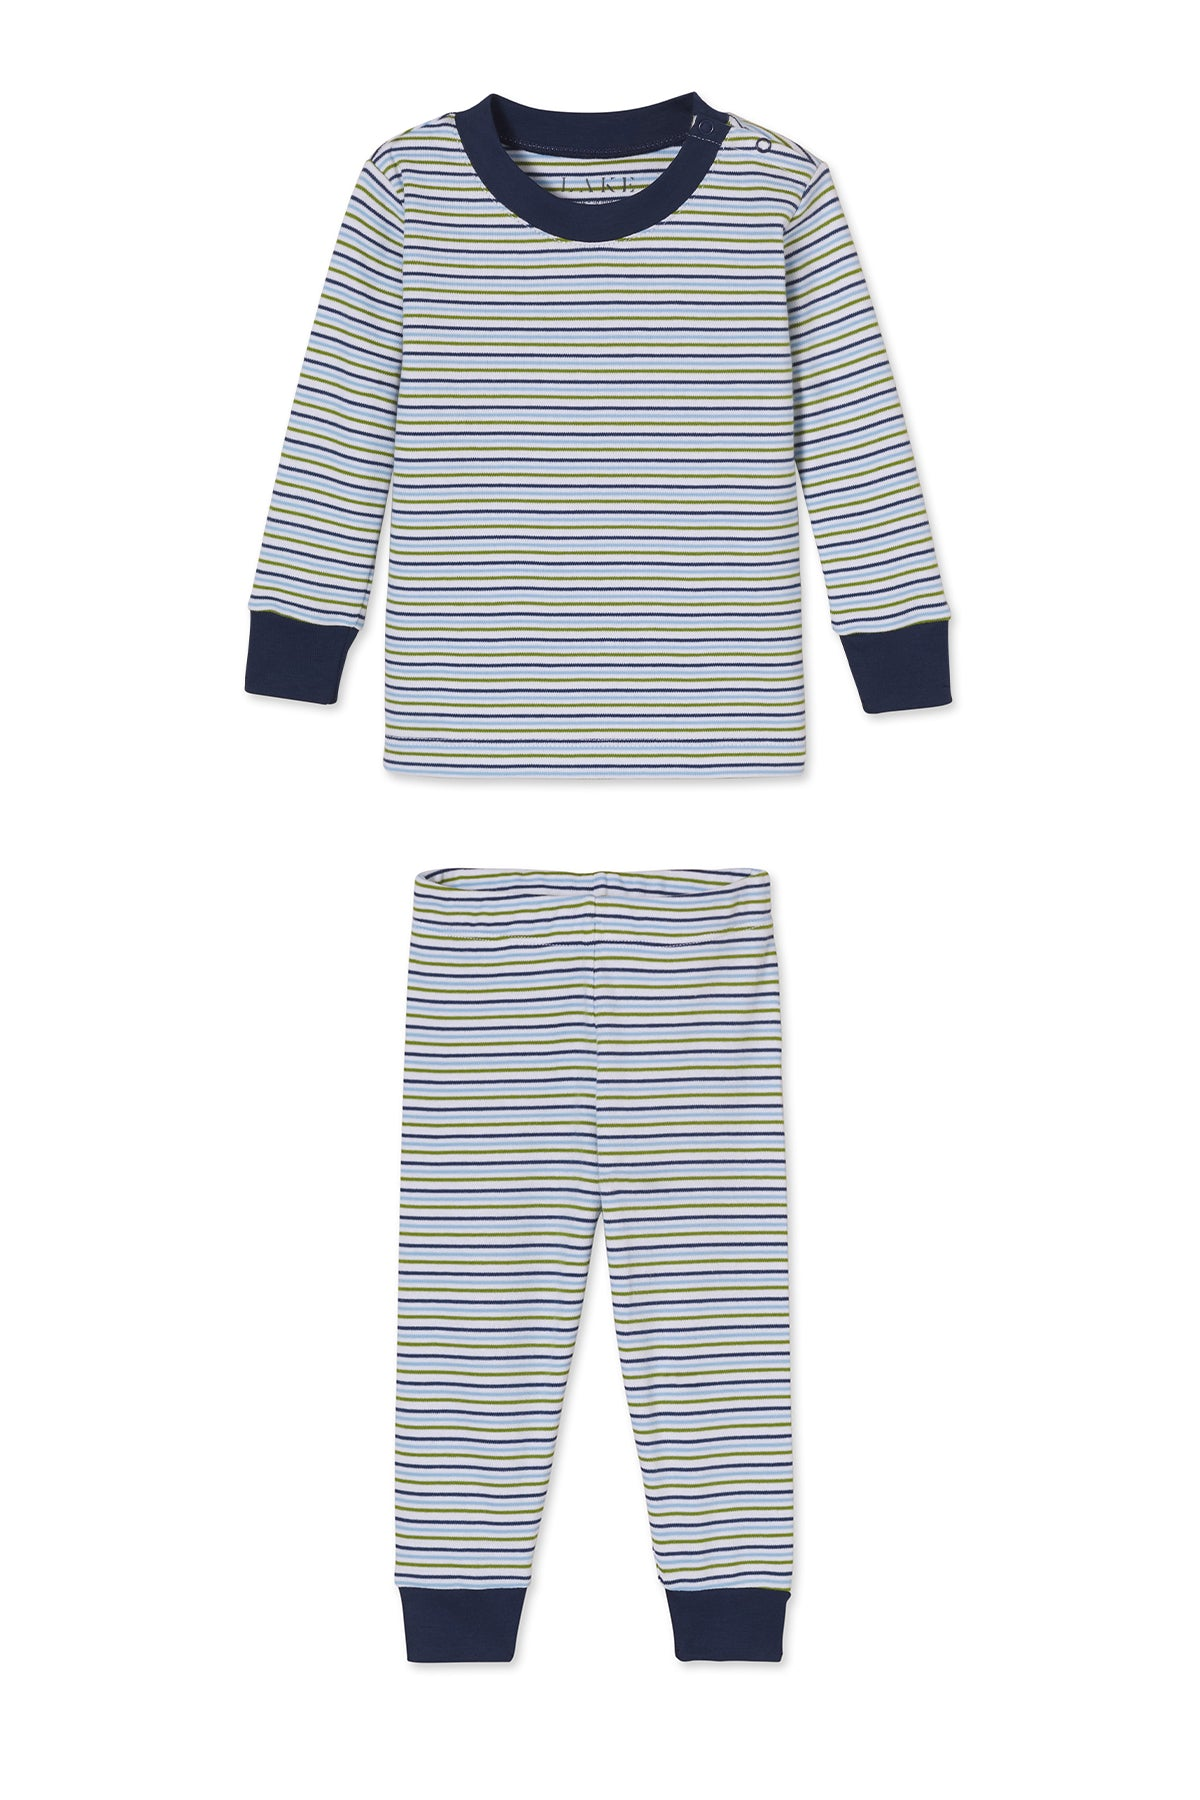 Baby Long-Long Set in Canoe Stripe